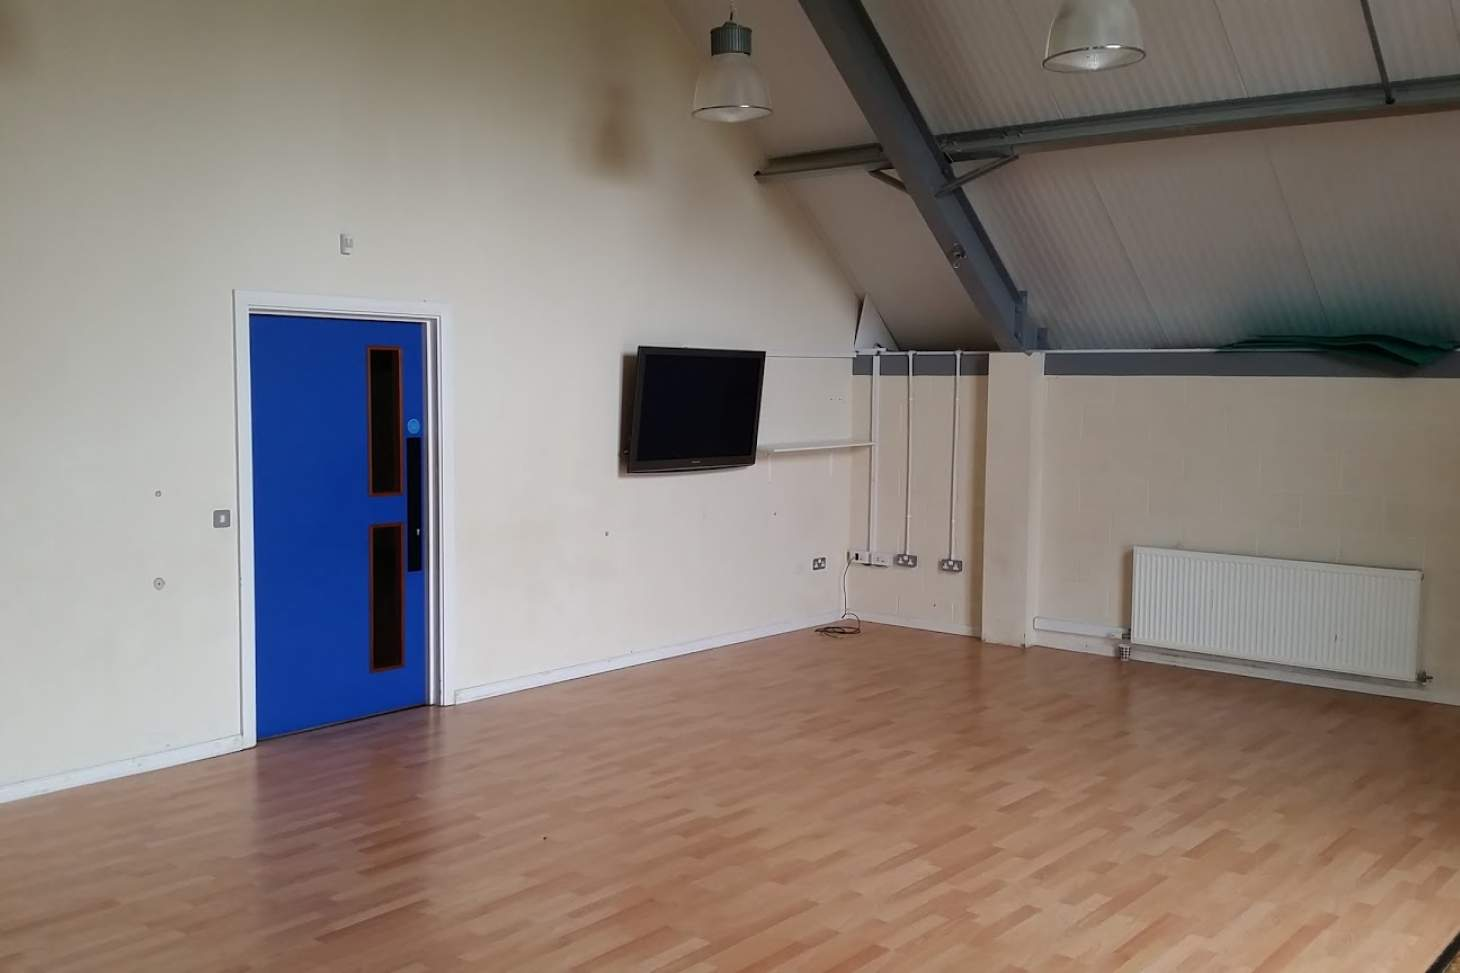 South Manchester Sports Club Studio space hire